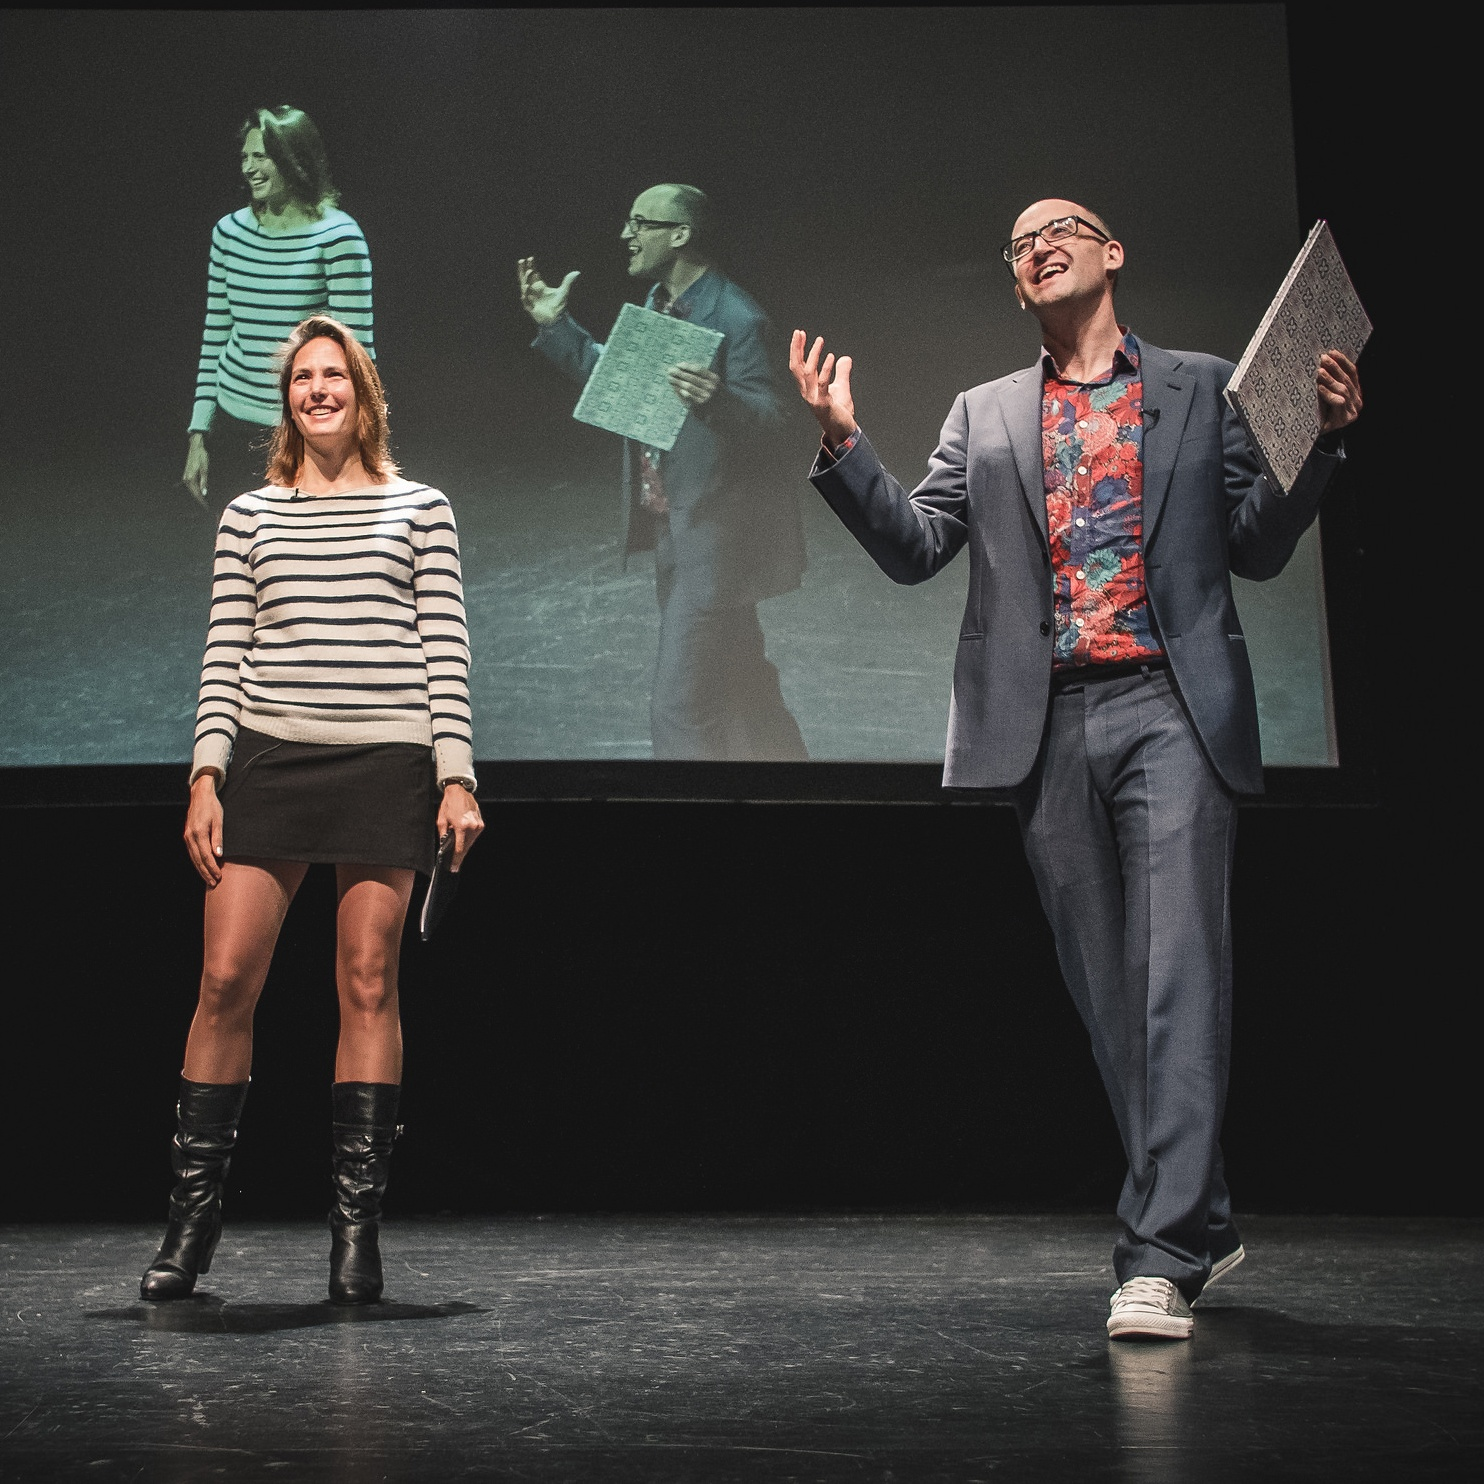 Colour photo of two people standing on a stage